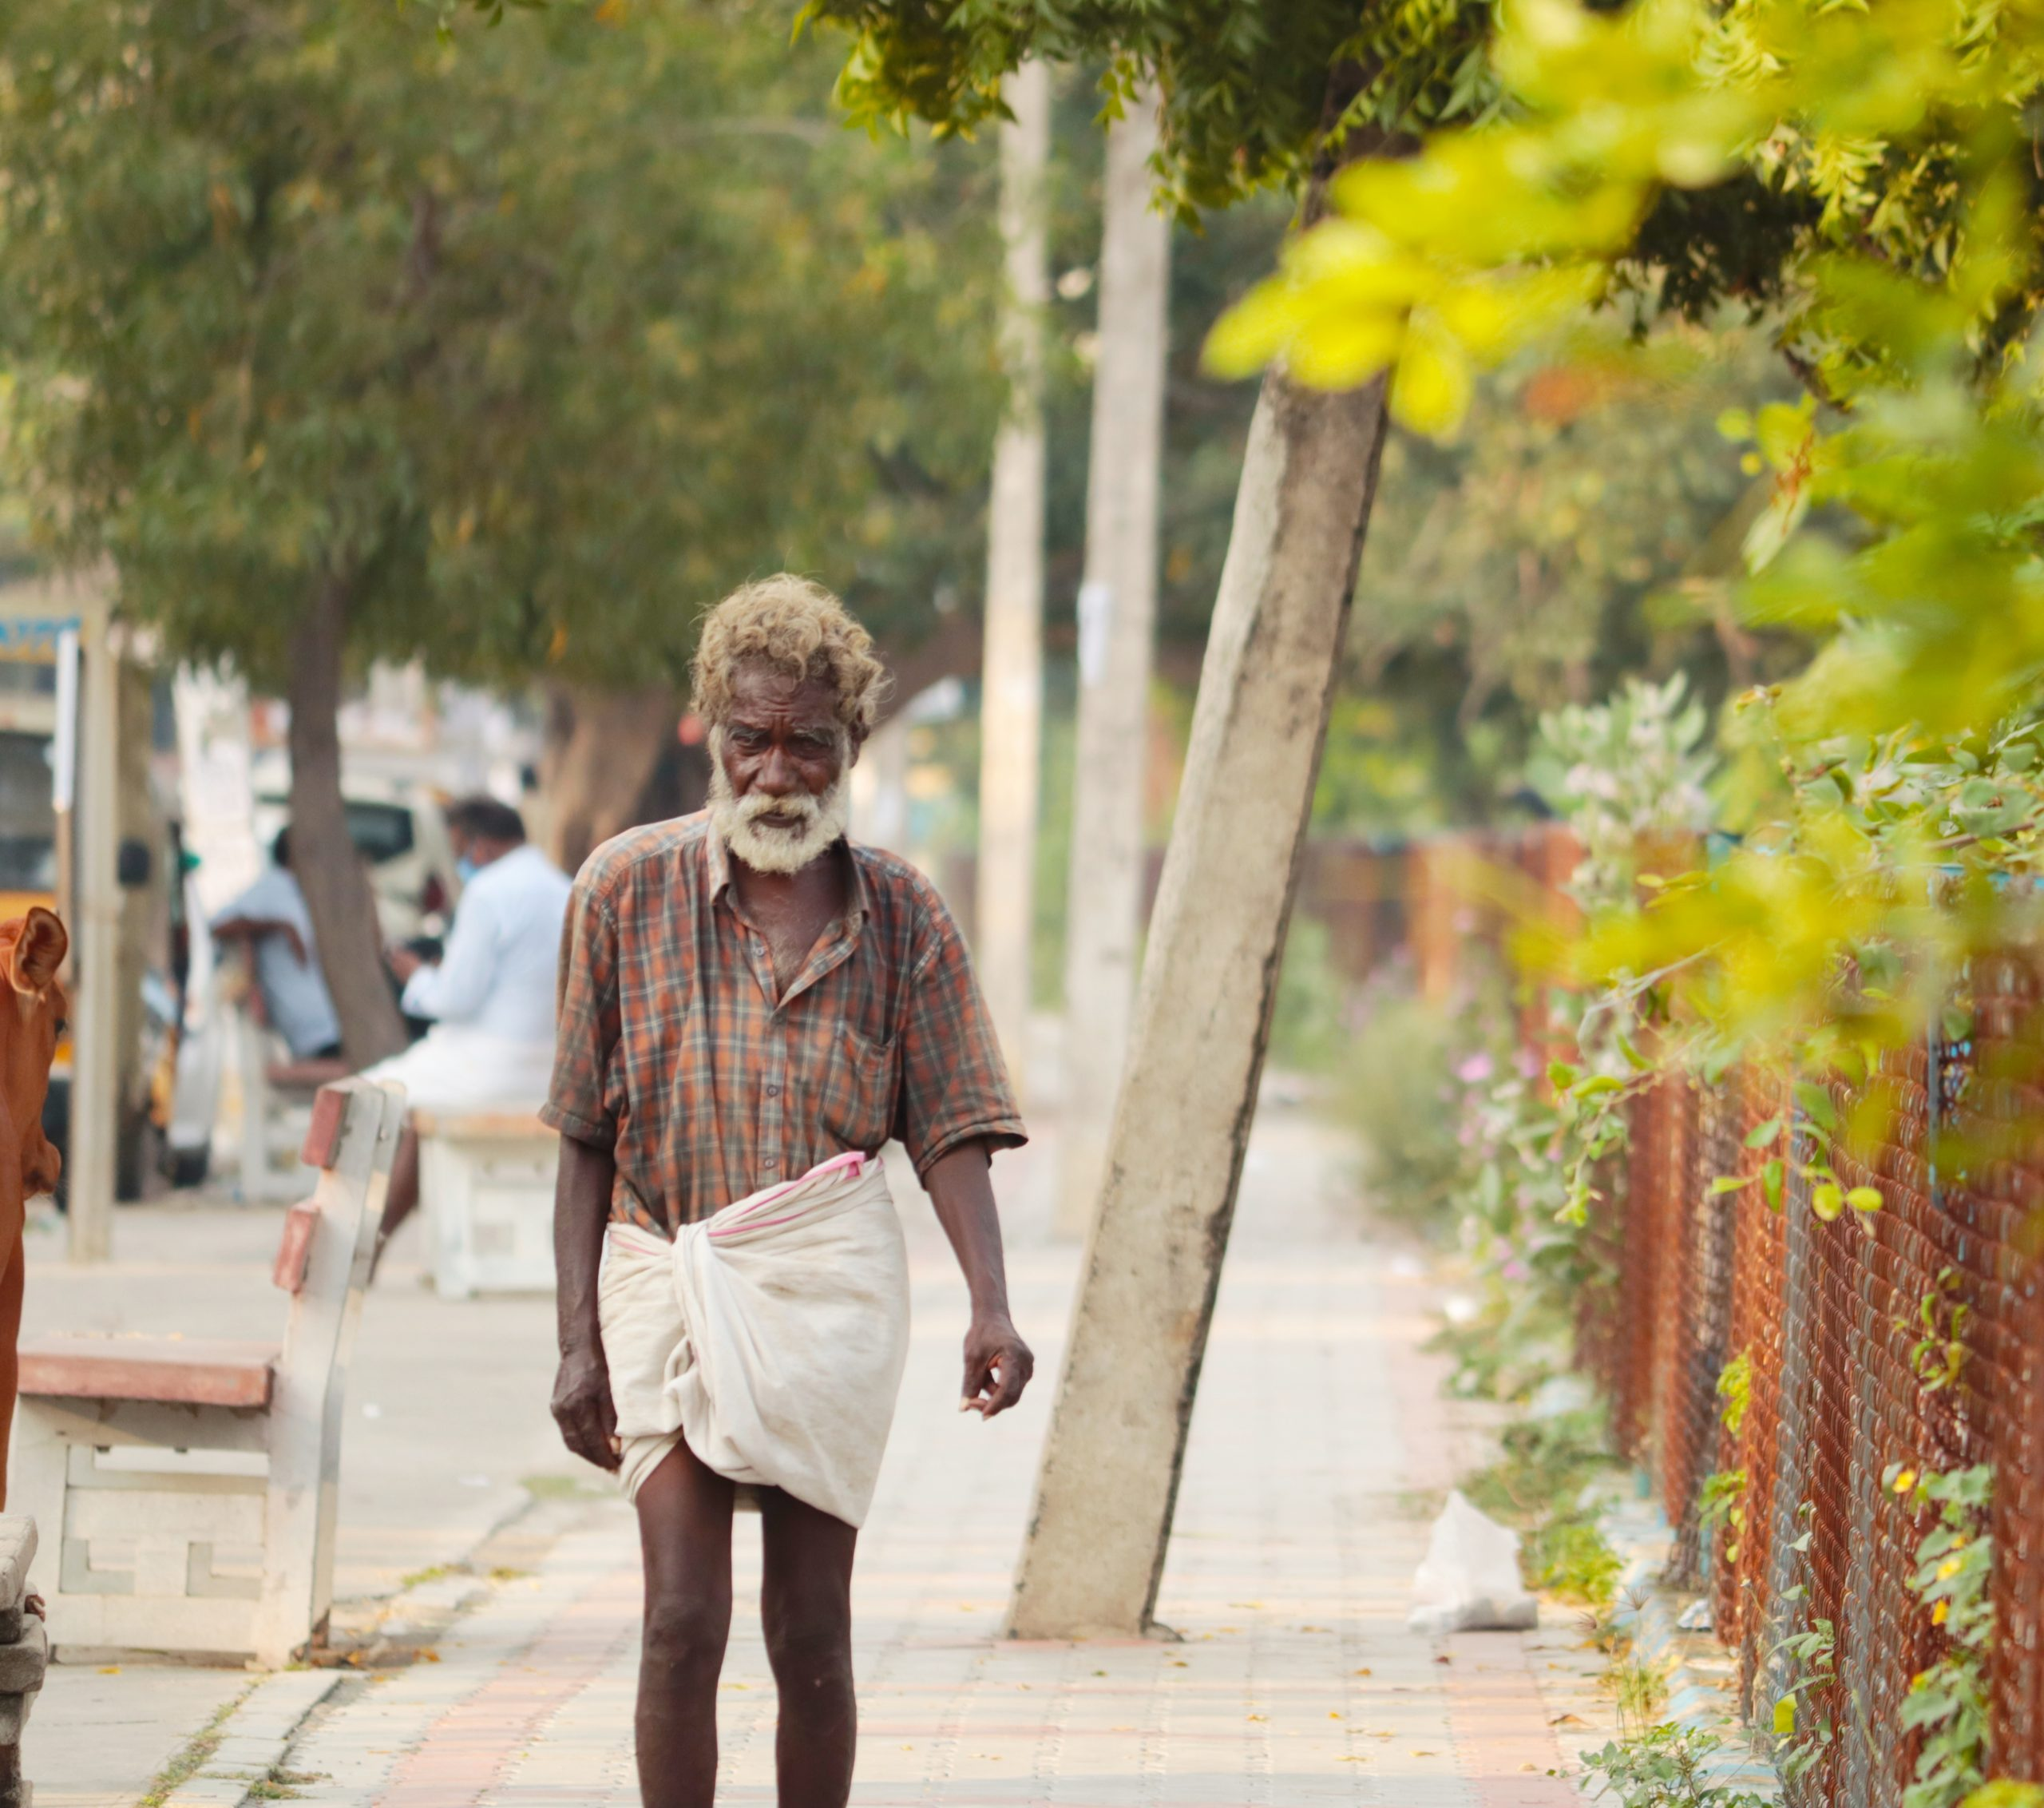 An old man walking on a public place